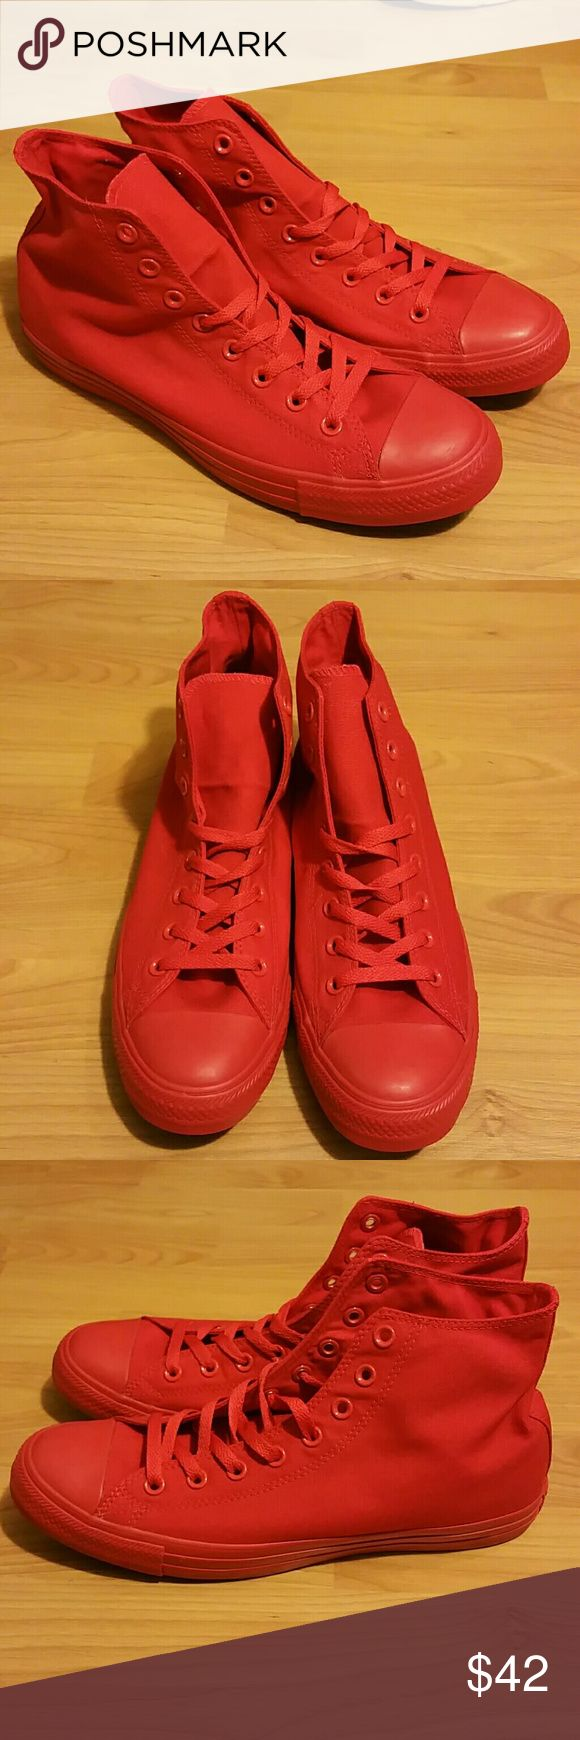 Mens converse all star New. Size 10. Never worn. Converse Shoes Sneakers